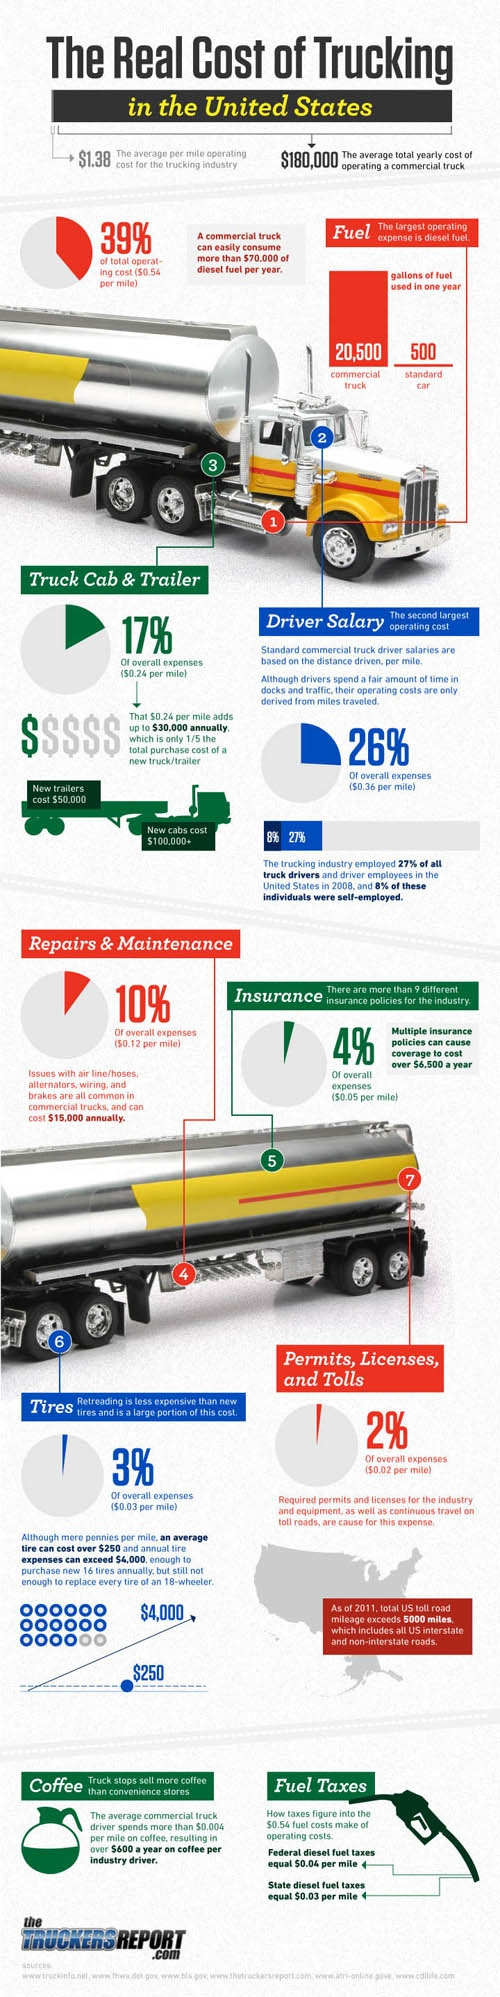 The Real Cost of Trucking – Infographic on http://www.bestinfographic.co.uk:  Internet Site,  Website, The Real, Web Site, Real Cost, Trucks Industrial, Roads Trips, Trucks Infographic, Trucks Driver